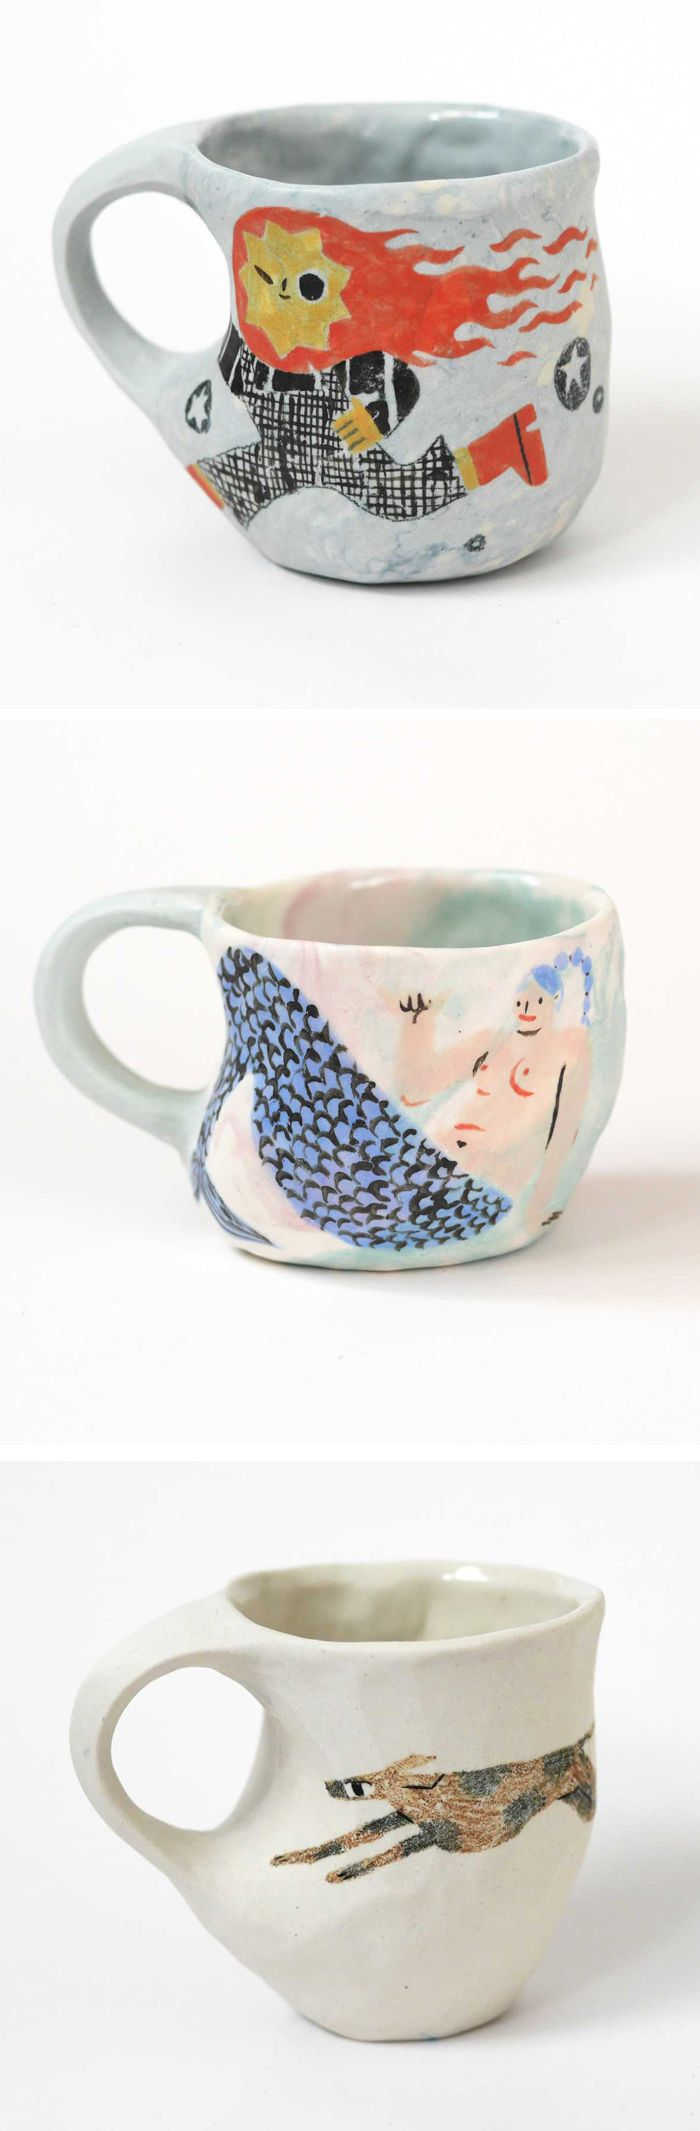 Ceramics by Two Hold Studios